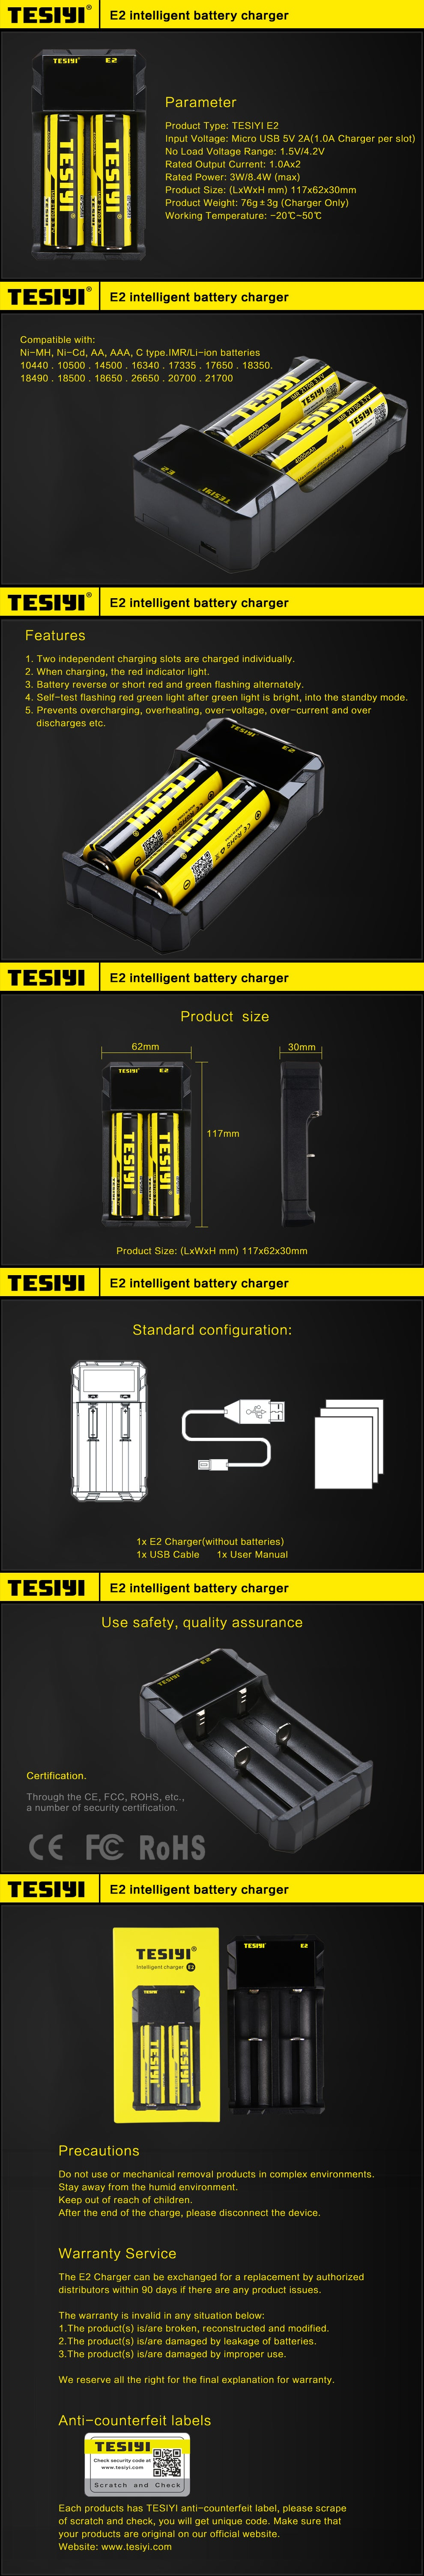 TESIYI E2 Battery Charger Vaping Battery Charger